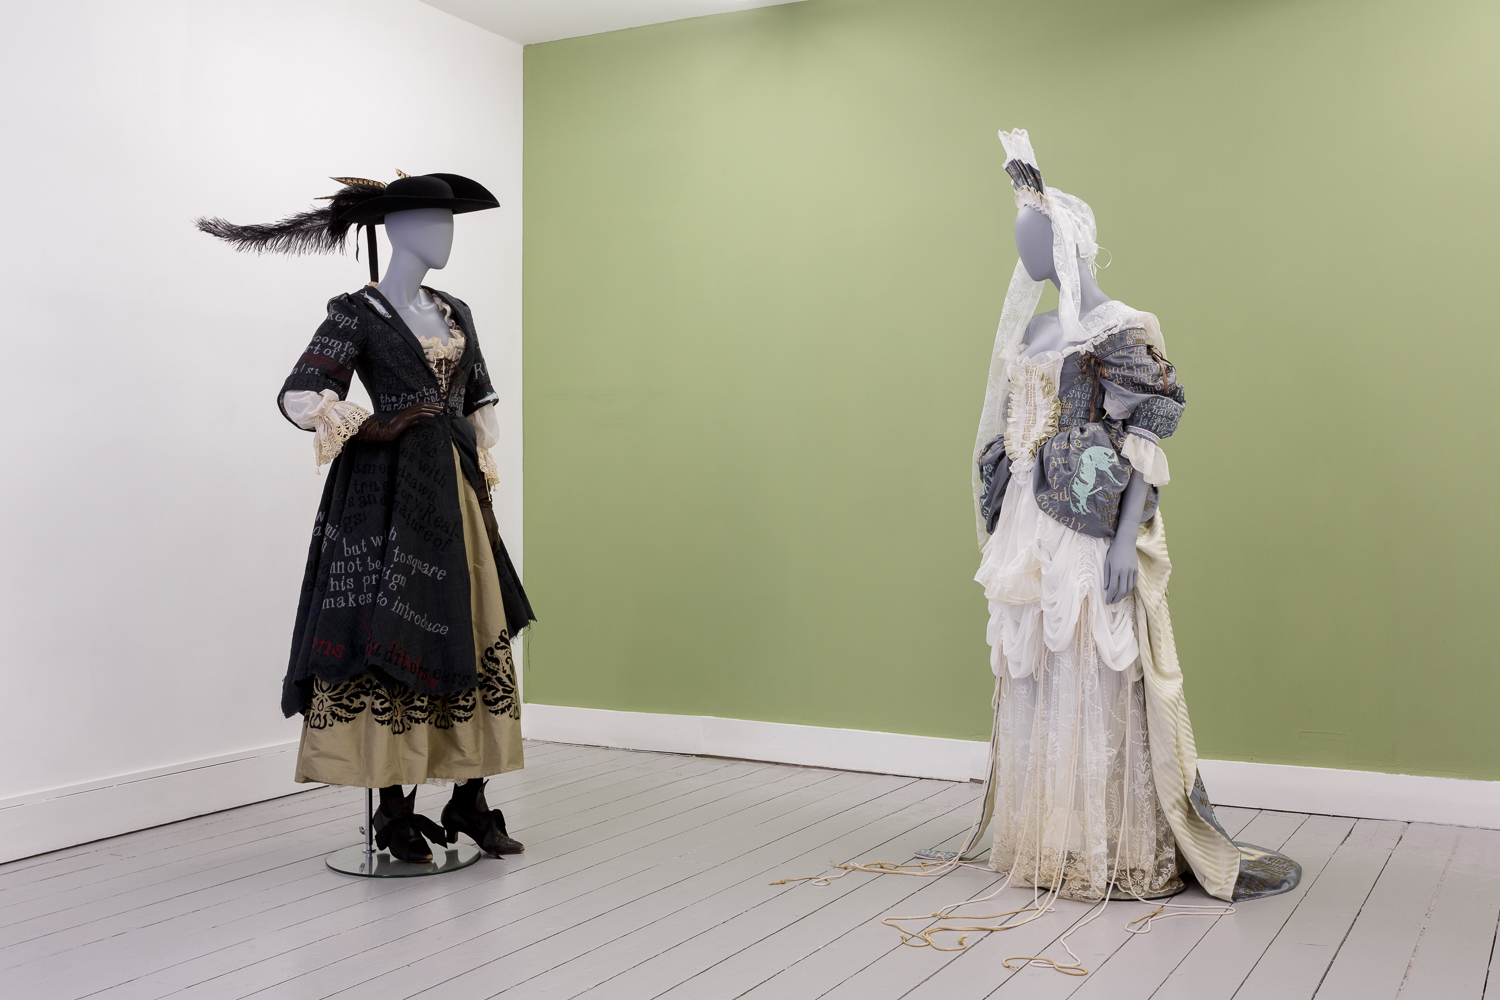 Georgia Horgan, Costumes for 'The Whore's Rhetorick', 2018-9. Courtesy of the artist. Photo: Tim Bowditch